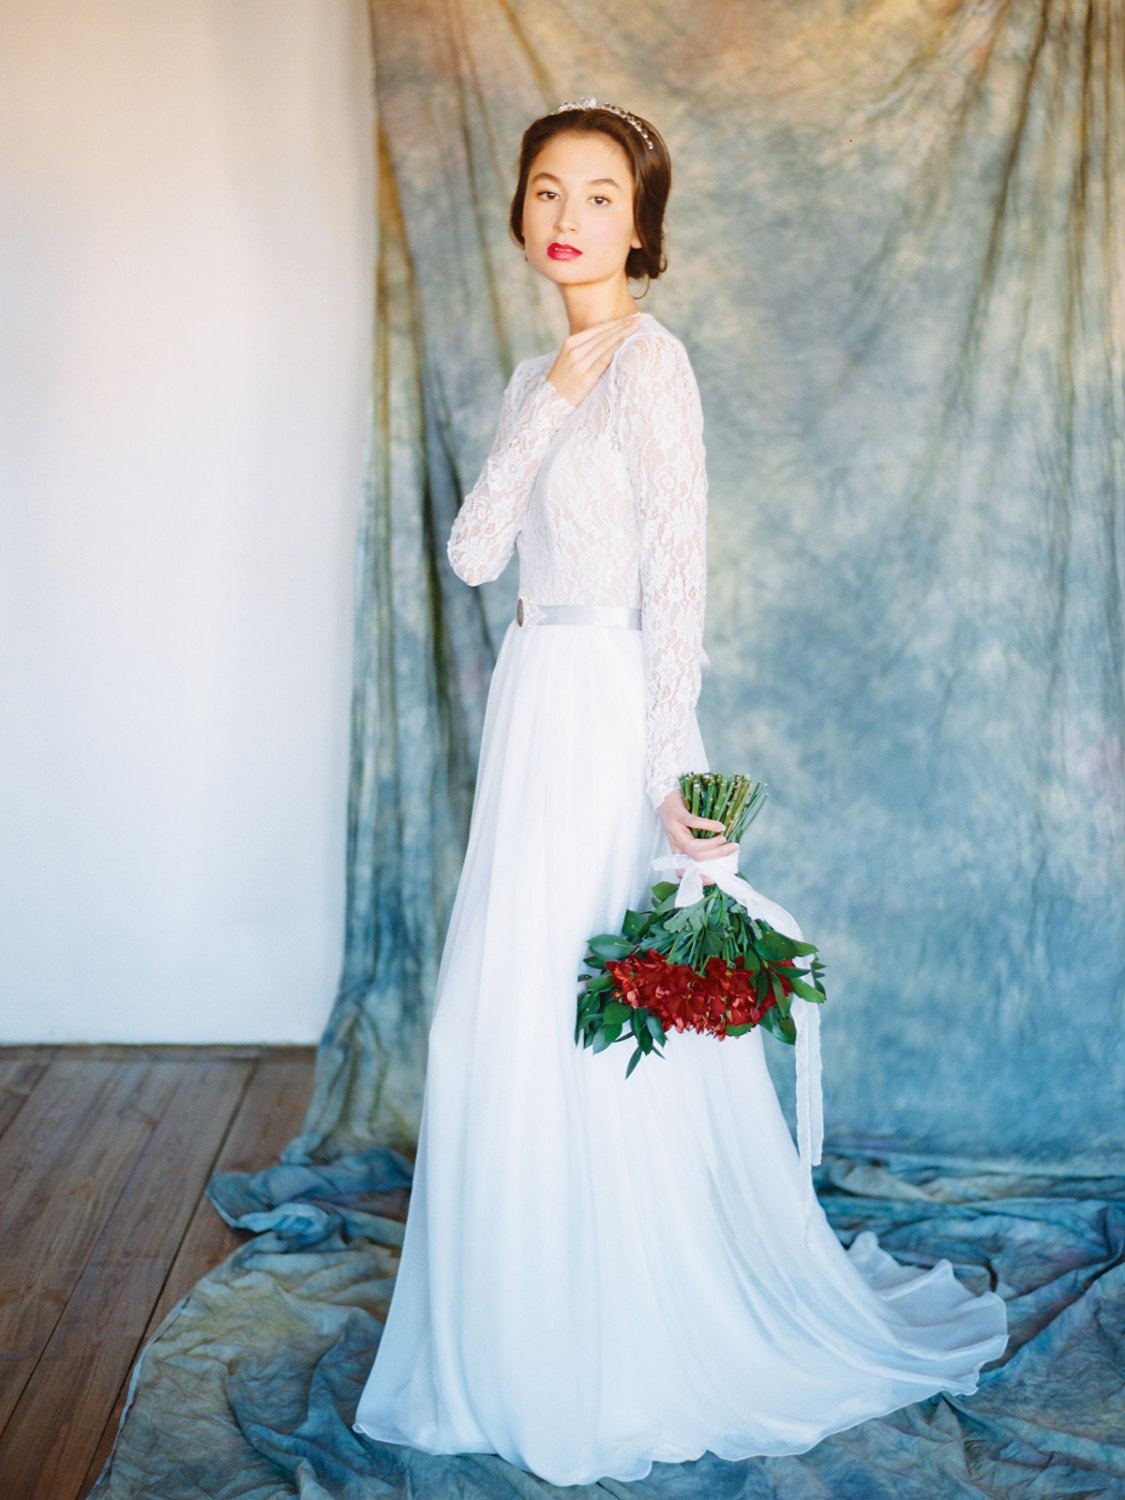 10 Gorgeous Wedding Gowns under $1000 from Etsy | The Budget Savvy Bride